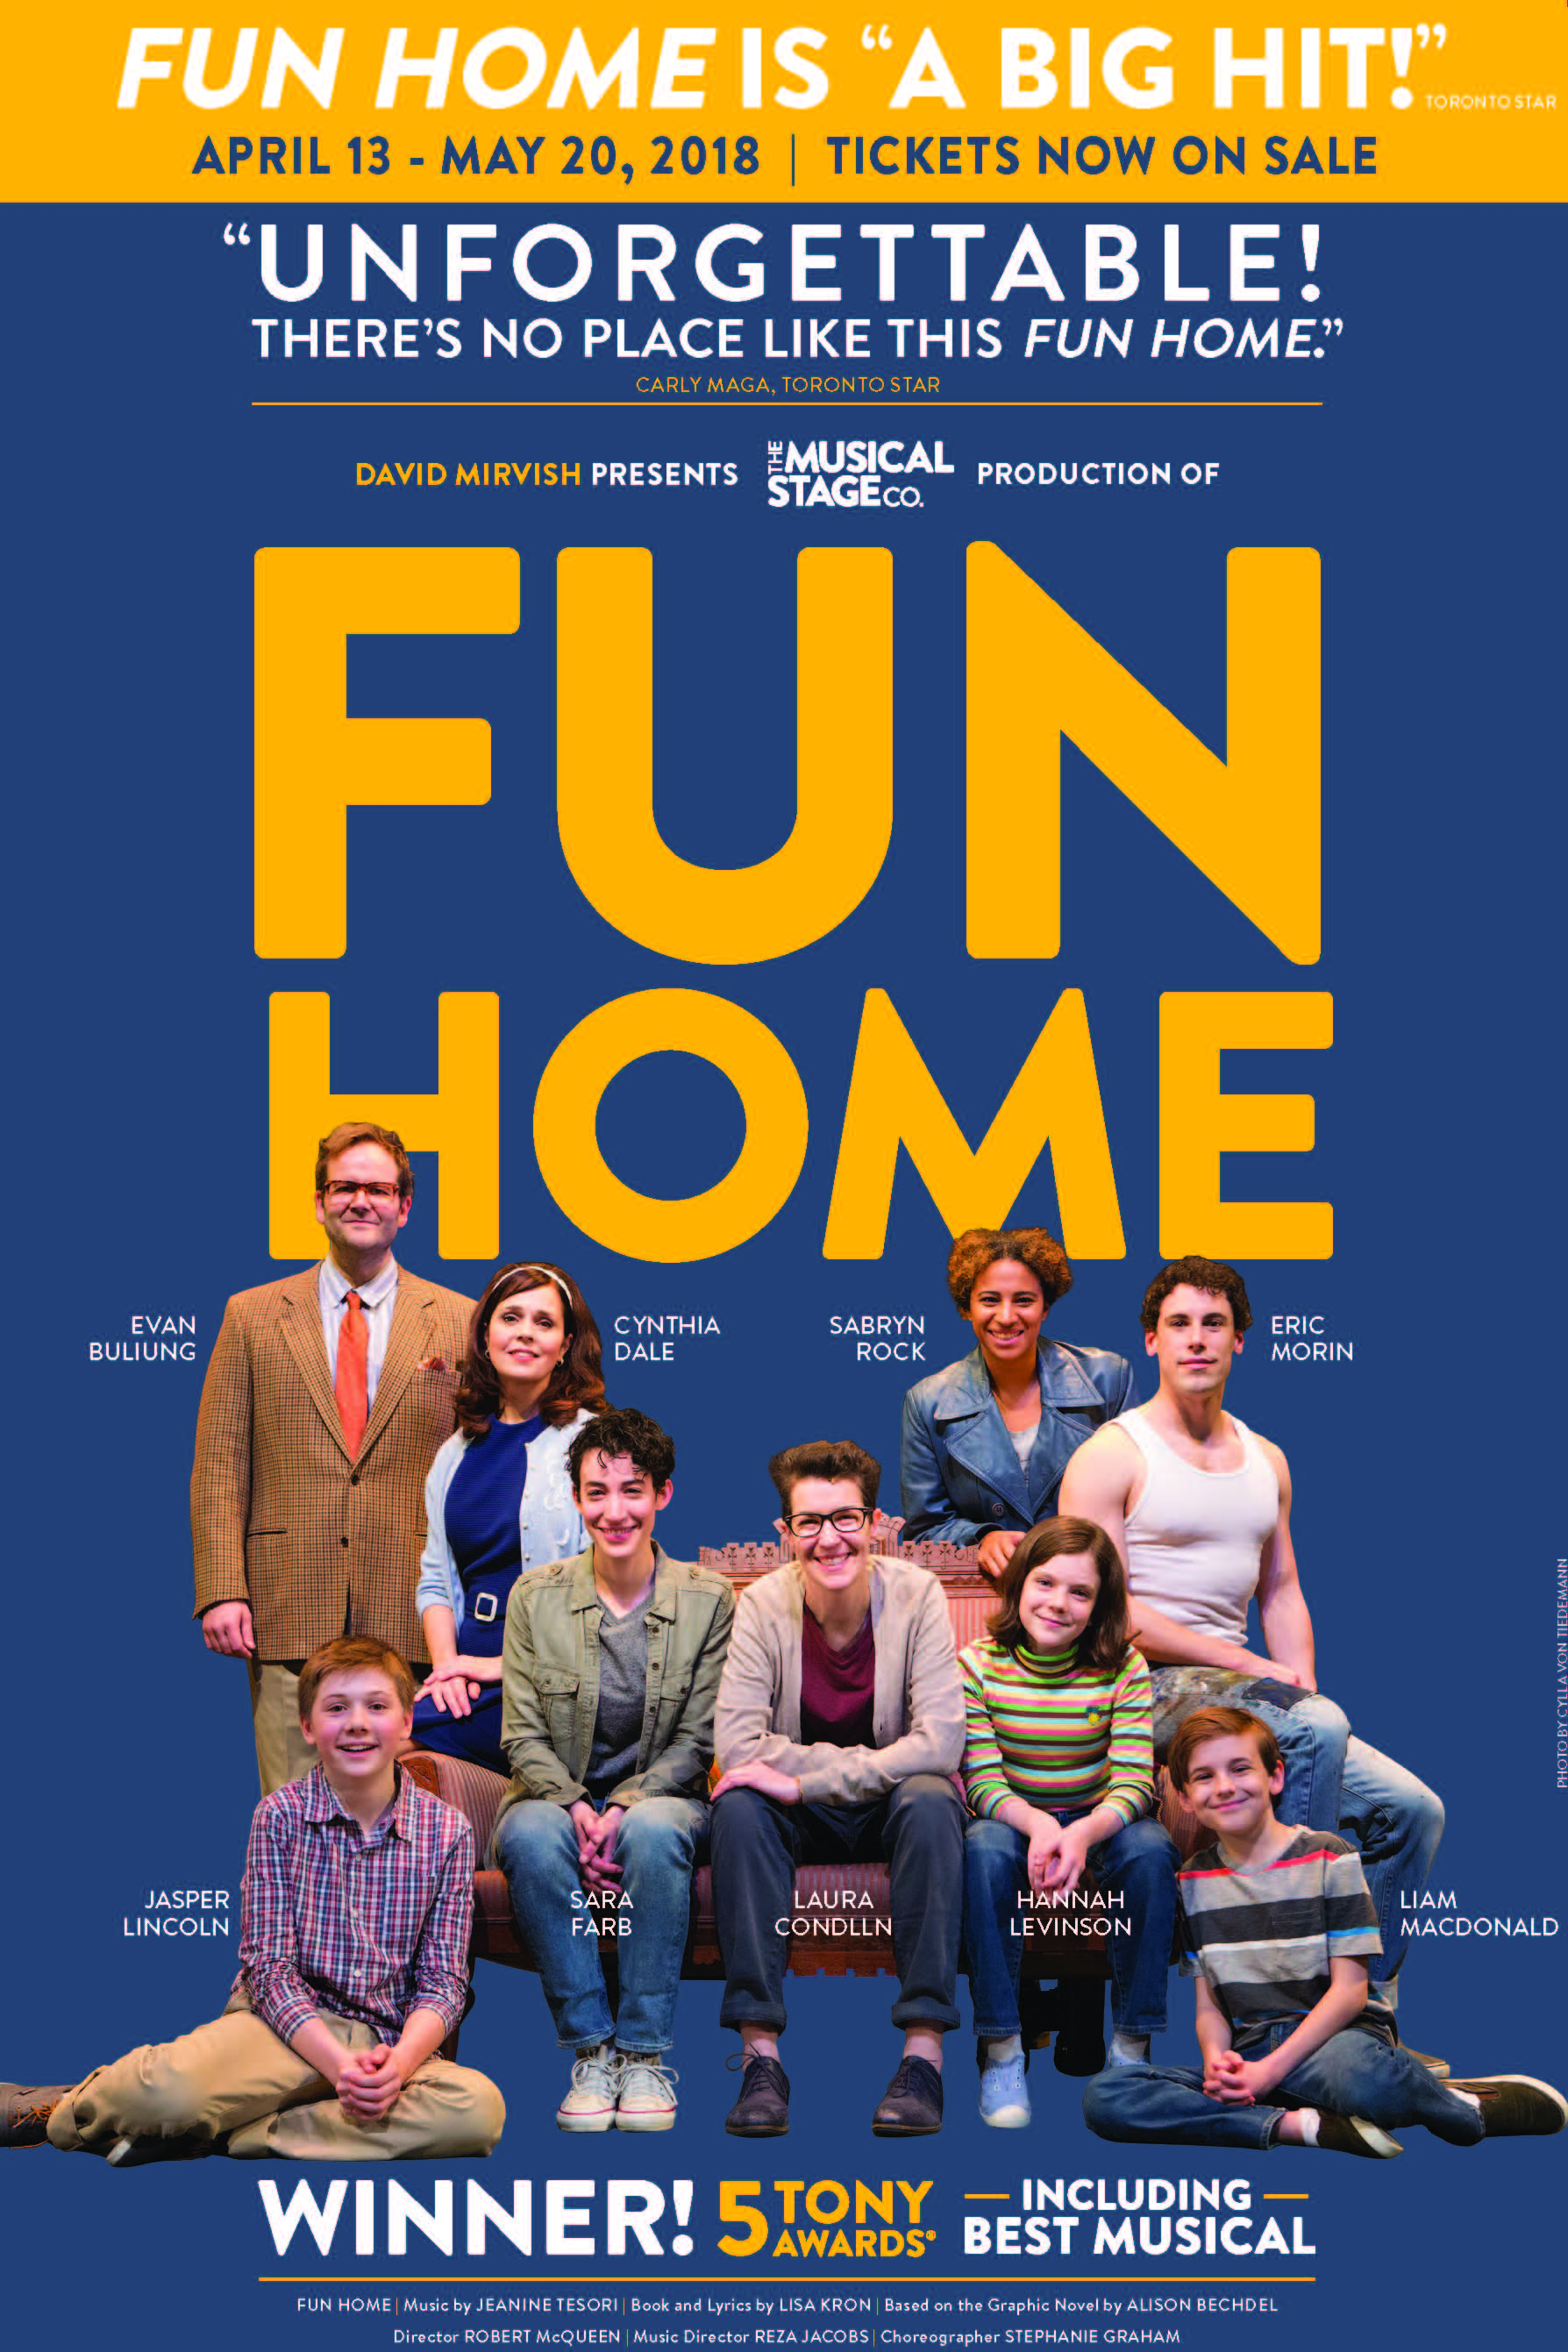 Fun Home (The Musical Stage Company)